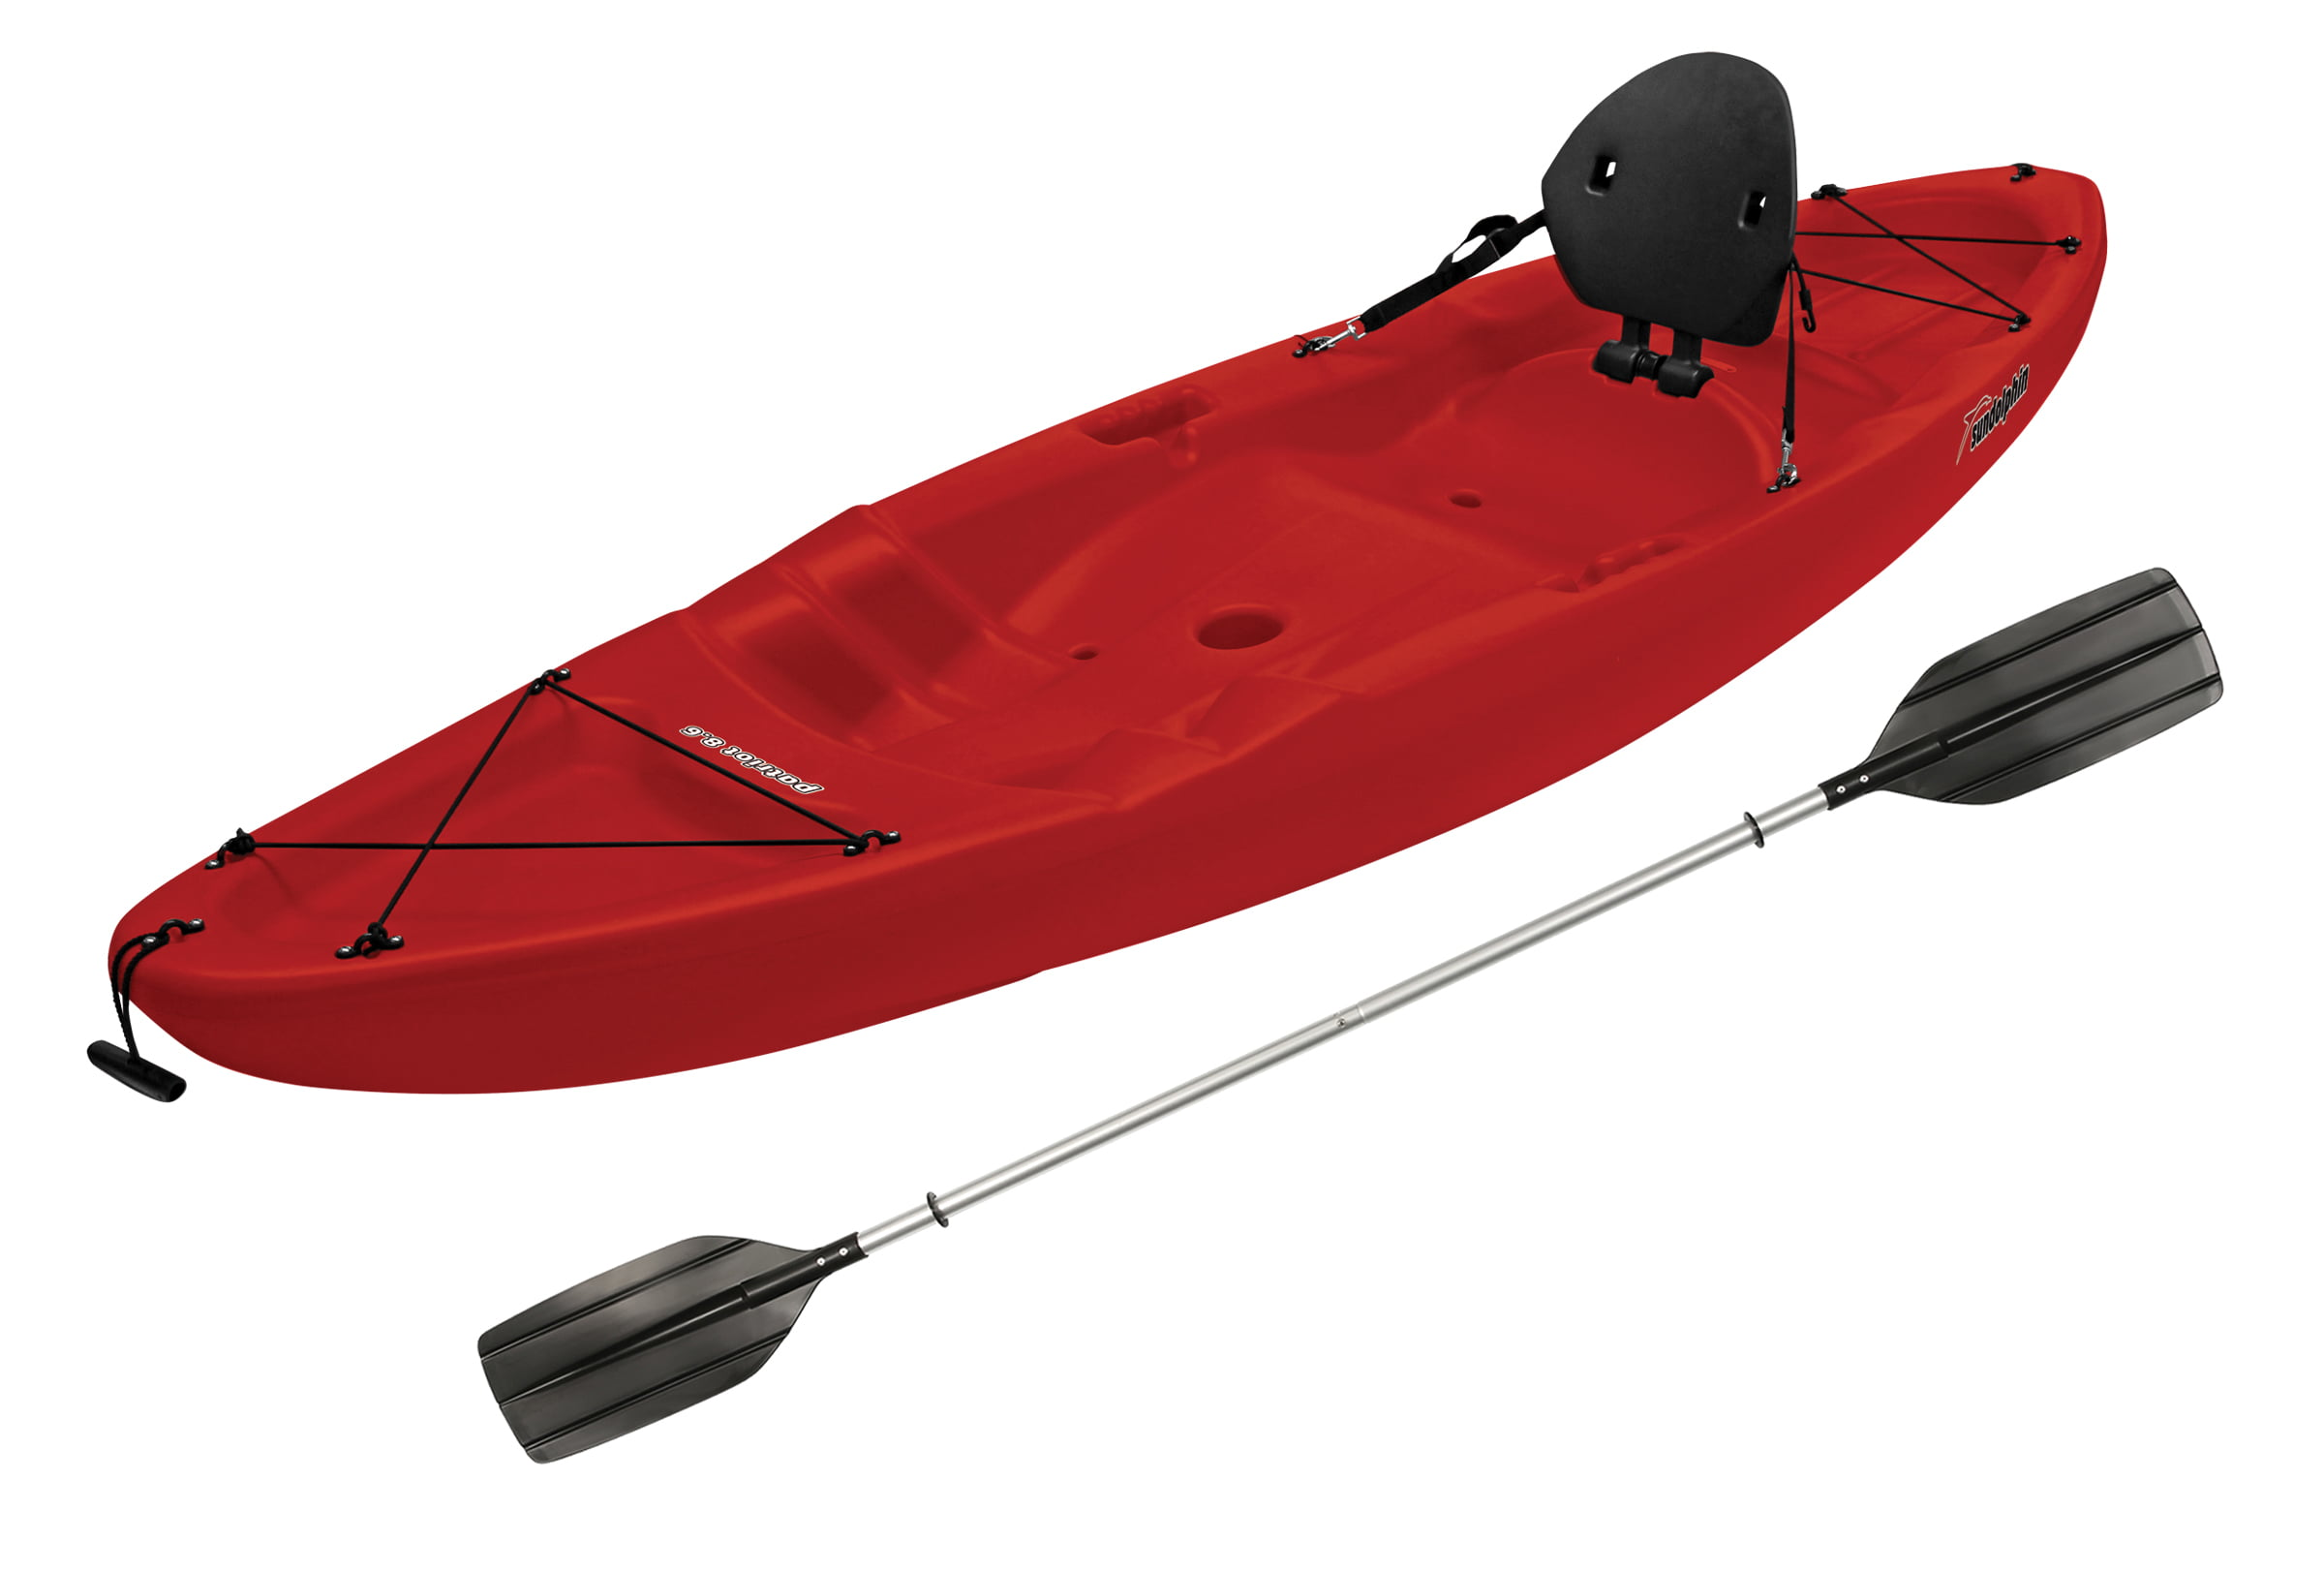 Sun Dolphin Patriot 8.6 Sit-On Kayak Red, Paddle Included by KL Outdoor